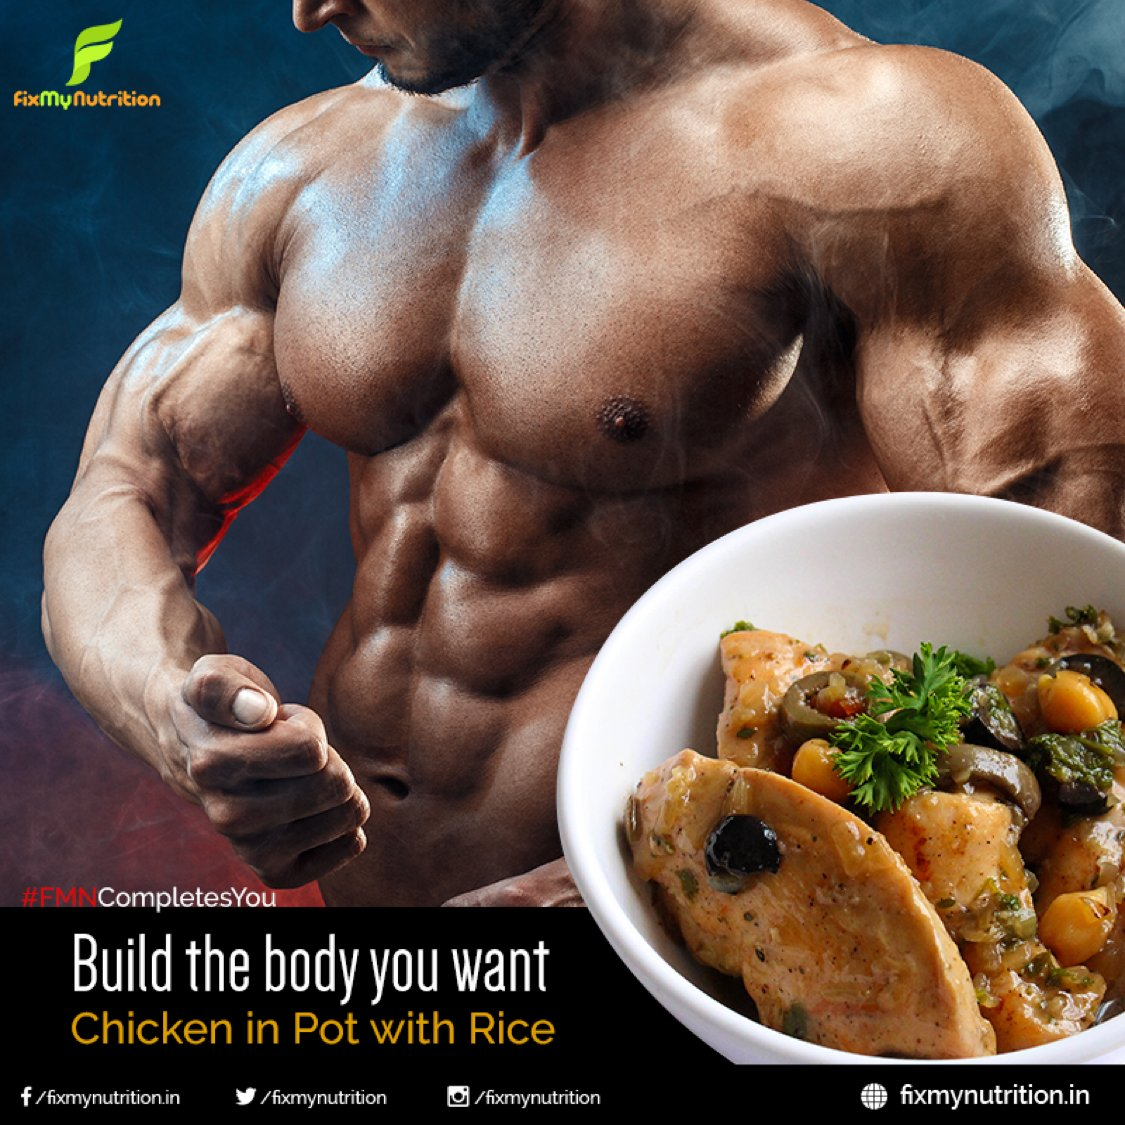 #Build Me meals by #FixMyNutrition are crafted to help you gain the right #muscles in the right areas! Order today!  http:// bit.ly/2qRoyym  &nbsp;  <br>http://pic.twitter.com/LHROBwDgMl